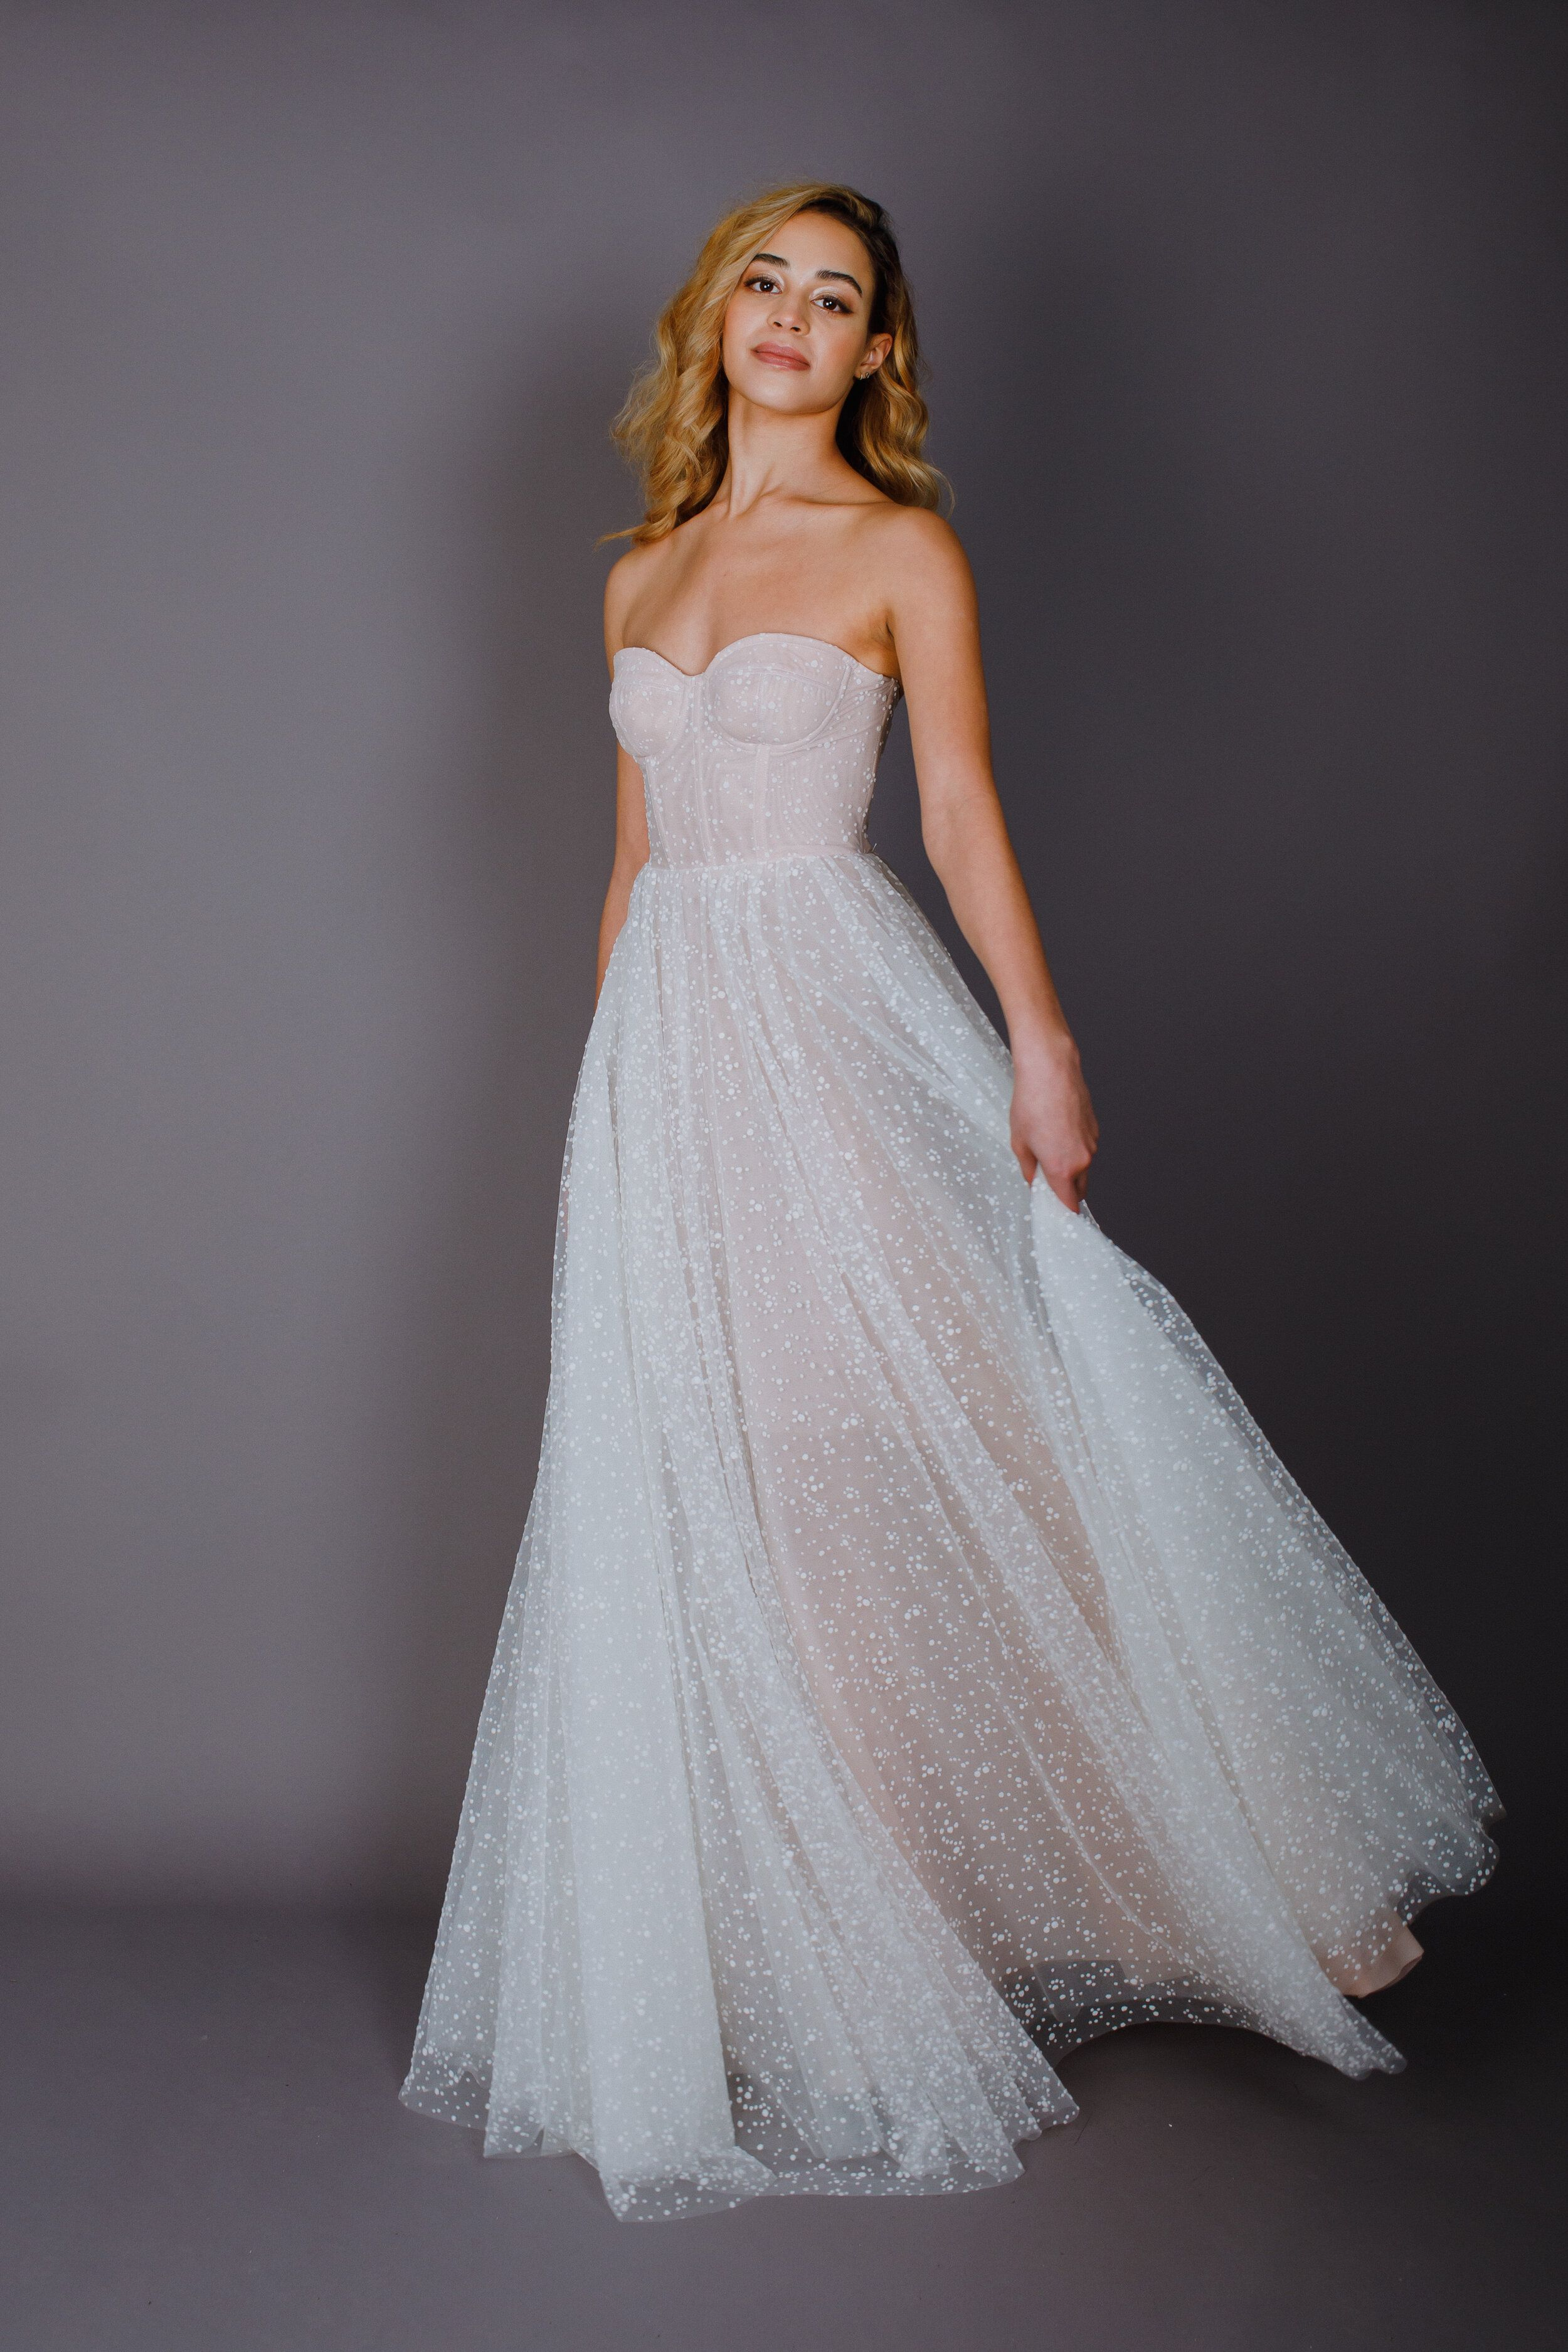 Dresses ew couture in 2020 quirky wedding dress